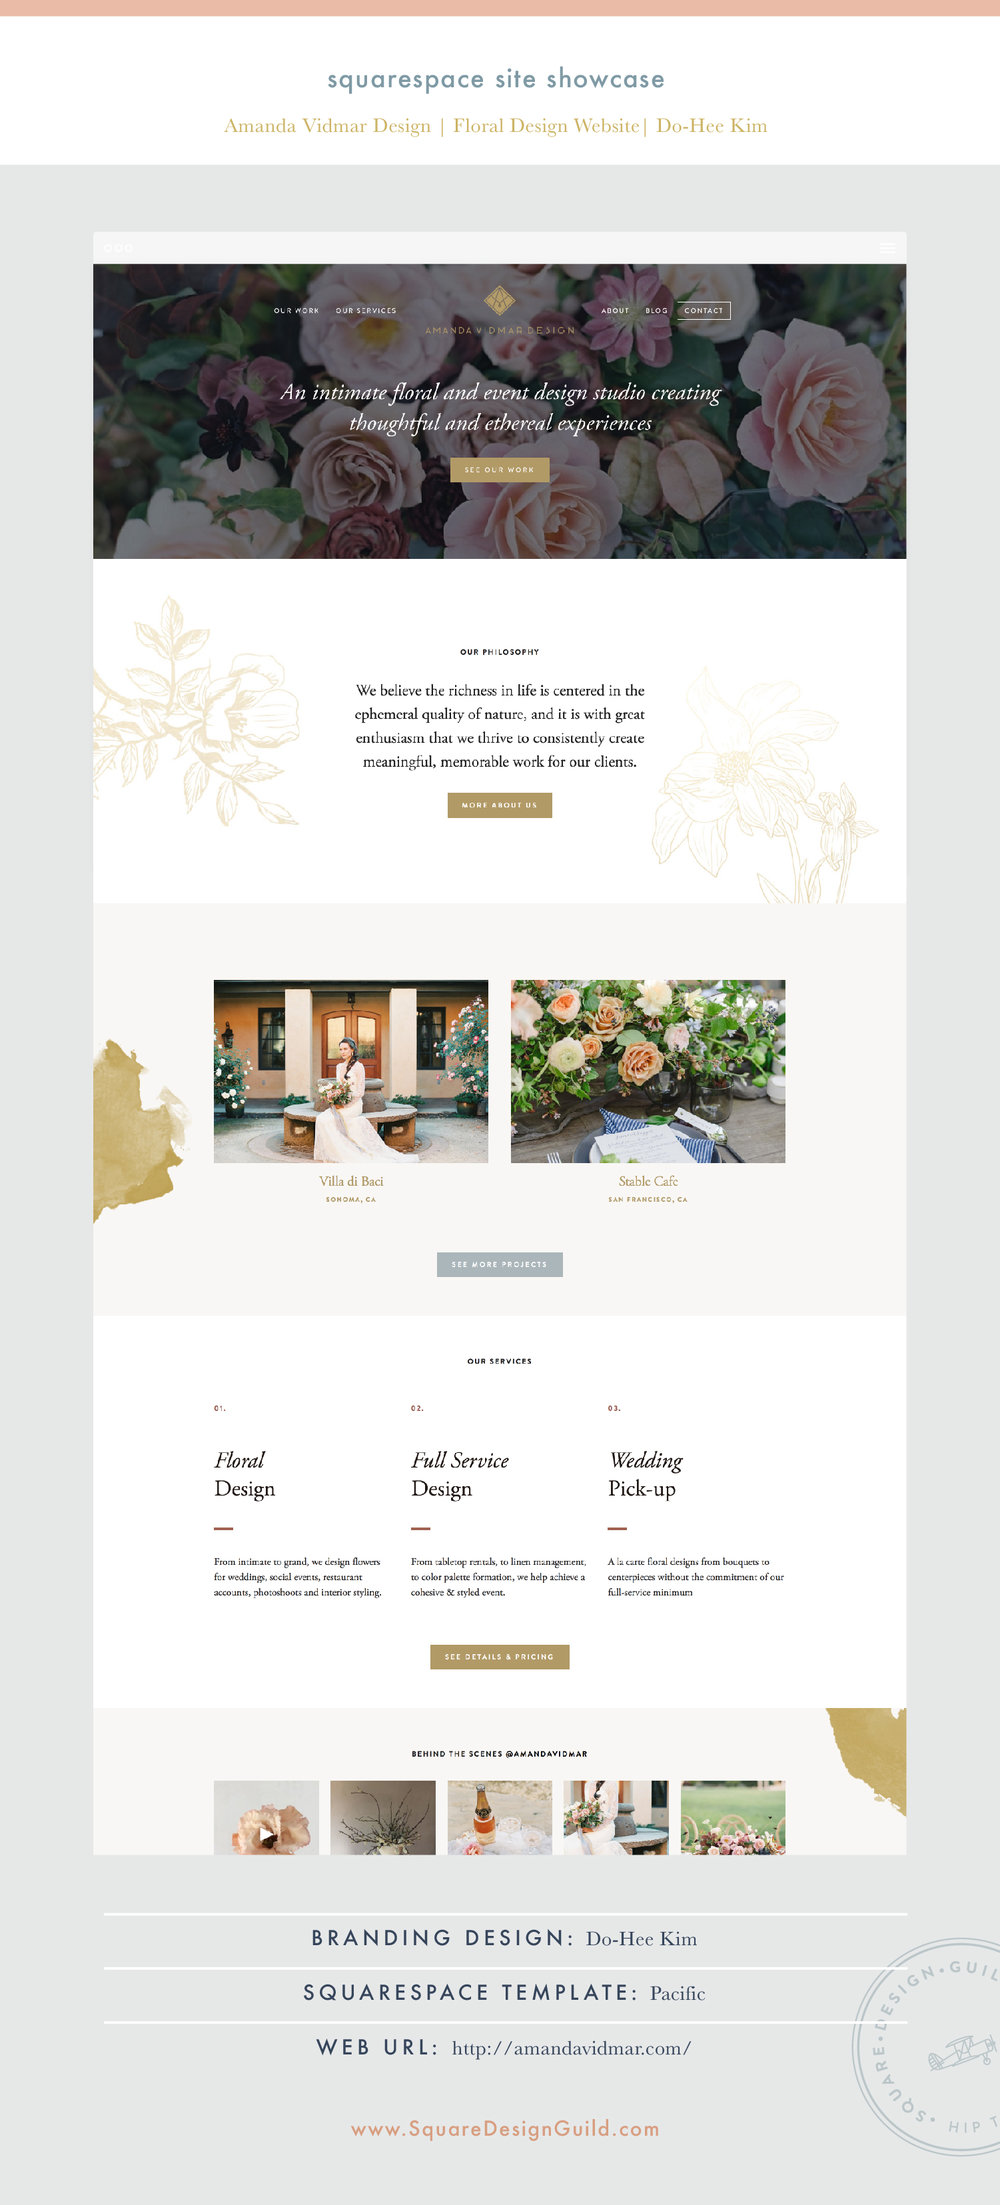 Square Design Guild | Squarespace Site Showcase: Amanda Vidmar Design | Floral Website on Pacific Template